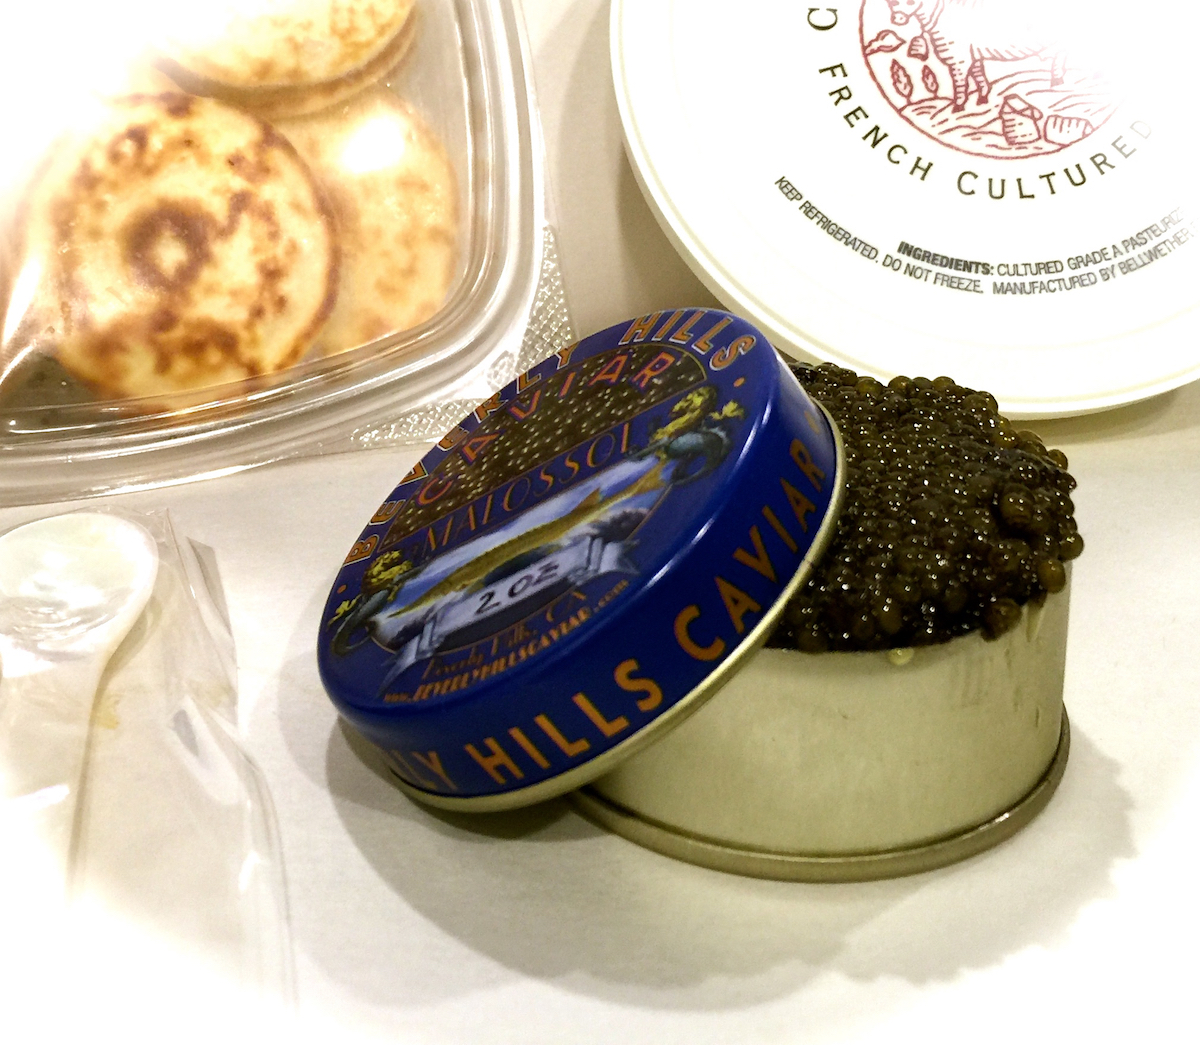 Online Caviar Deal in Rancho Santa Fe California Caviar Promo in Rancho Santa Fe California caviar deal, caviar promotion, online caviar deal, caviar deals